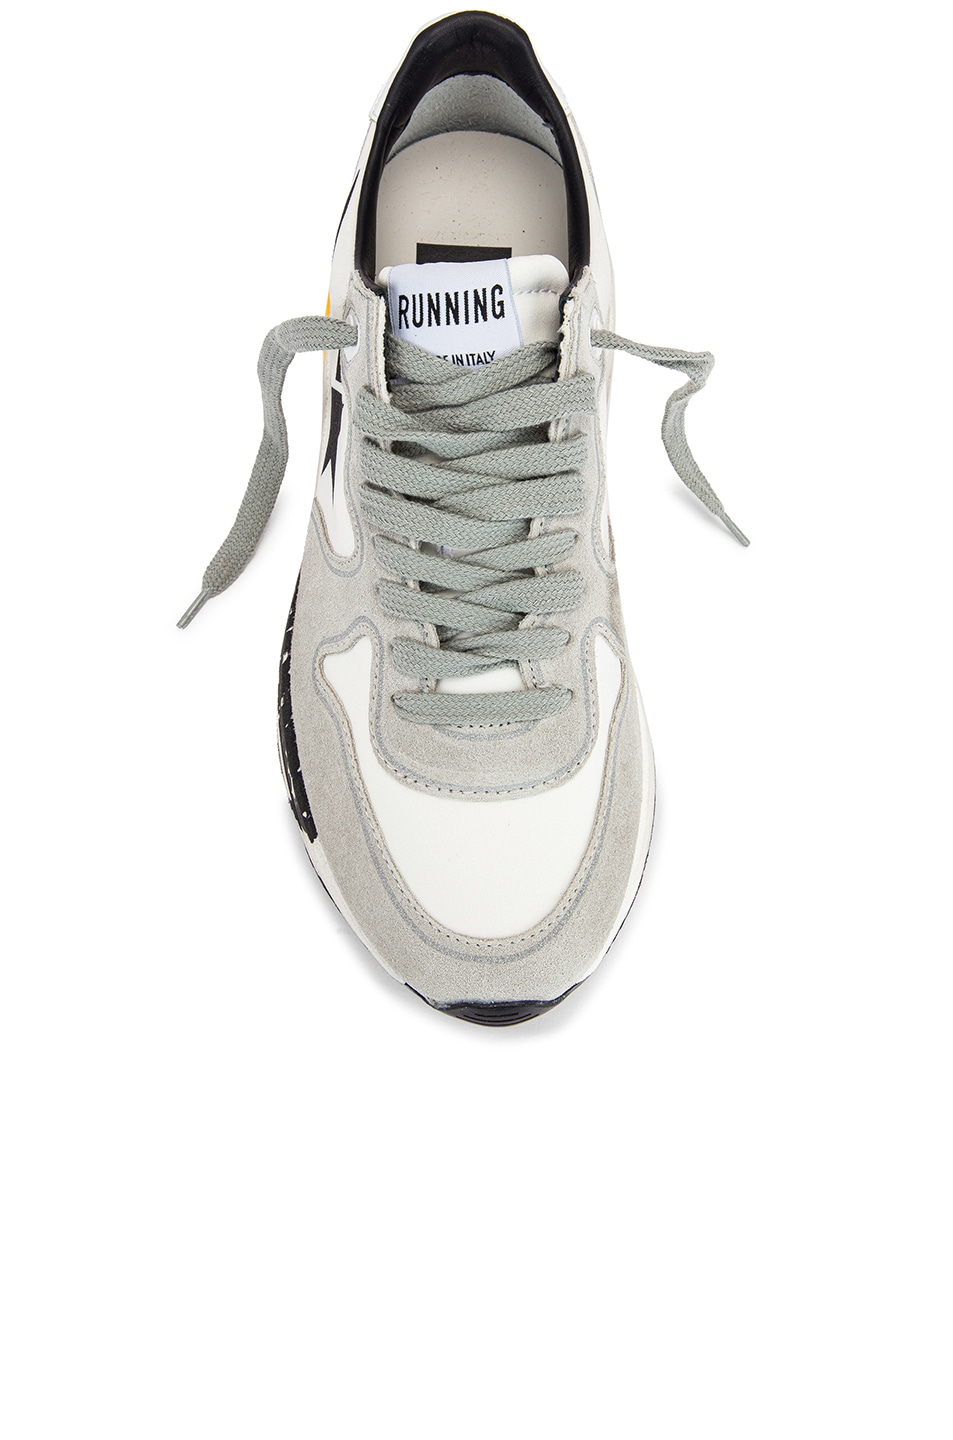 Image 4 of Golden Goose Running Sole Sneaker in White Lycra & Black